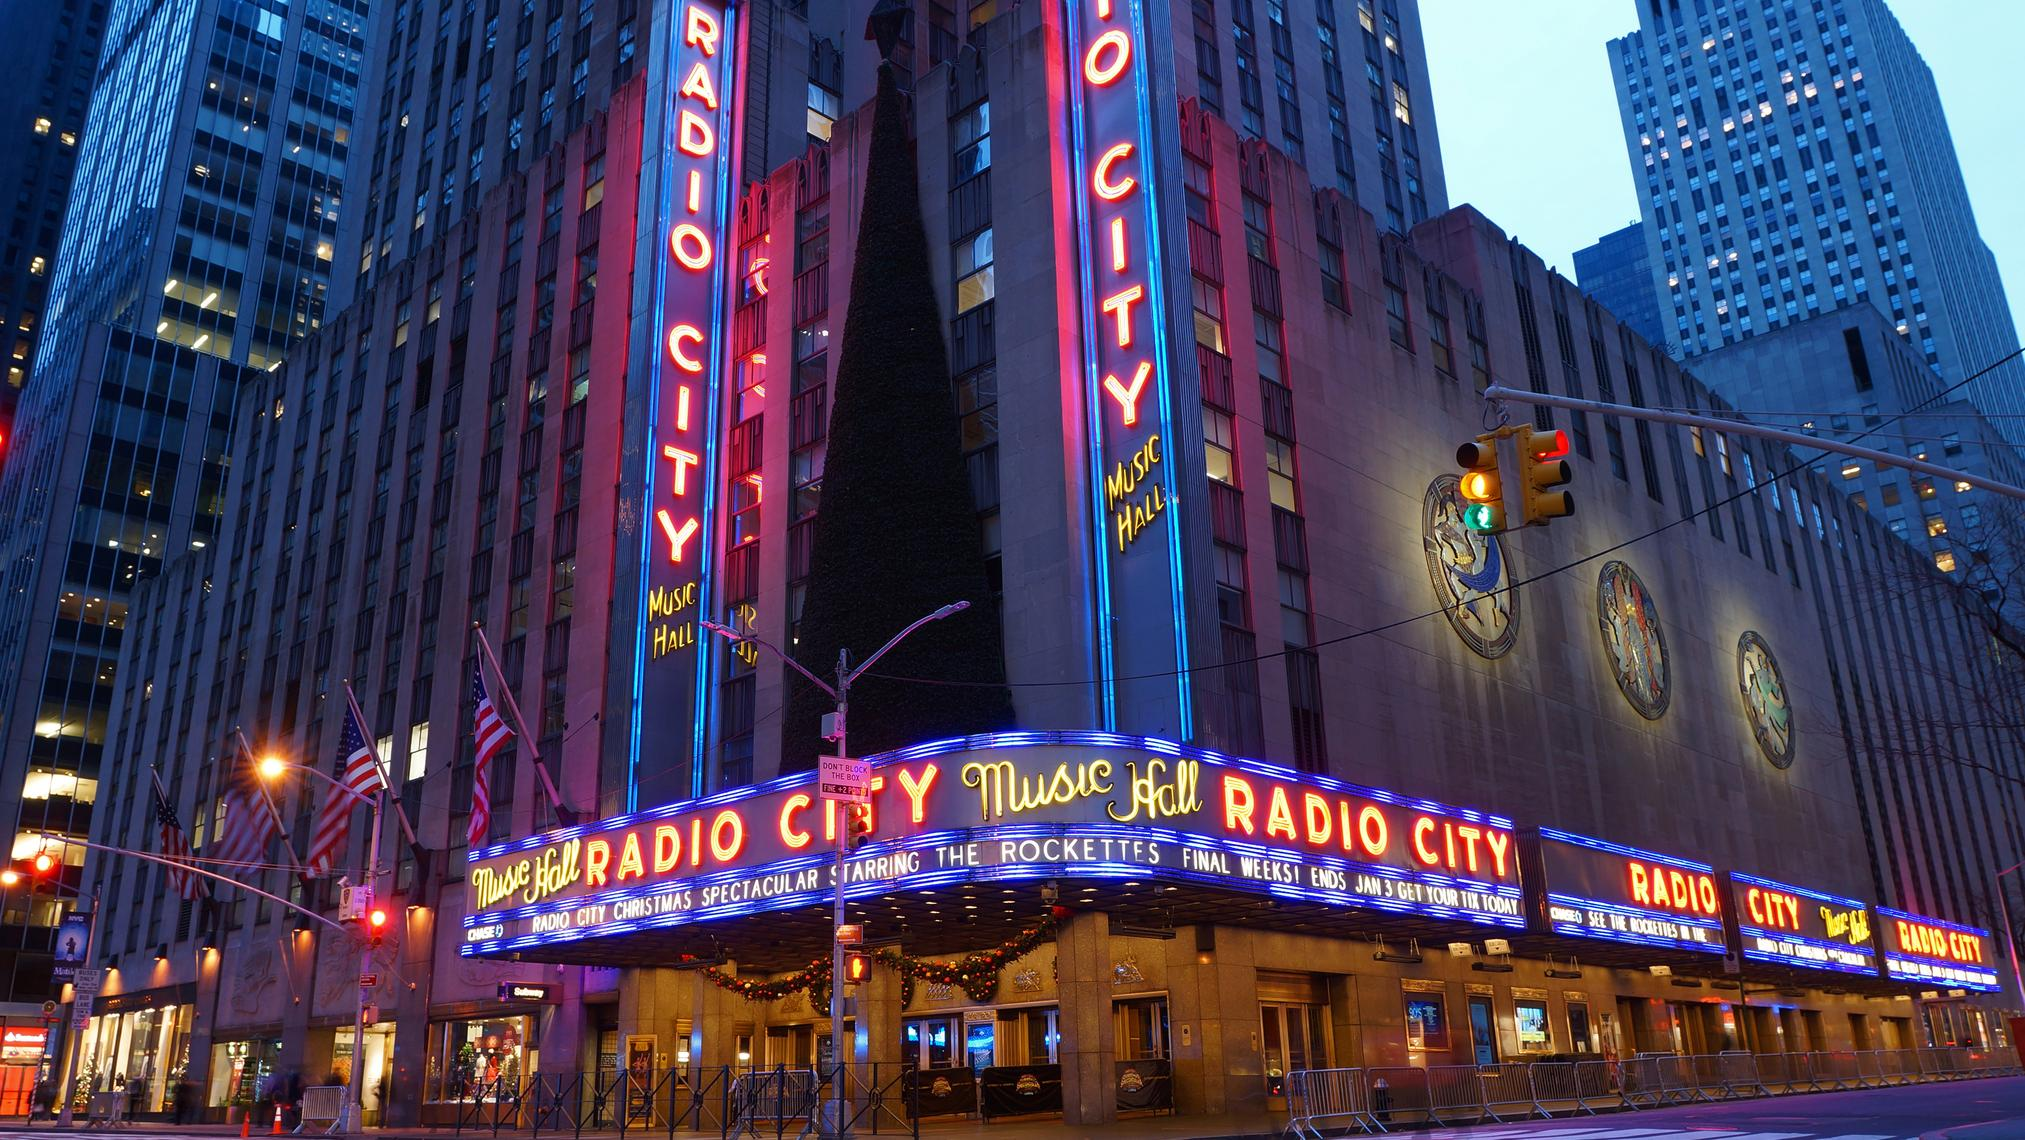 Now Casting: Work as an Ambassador for the Radio City